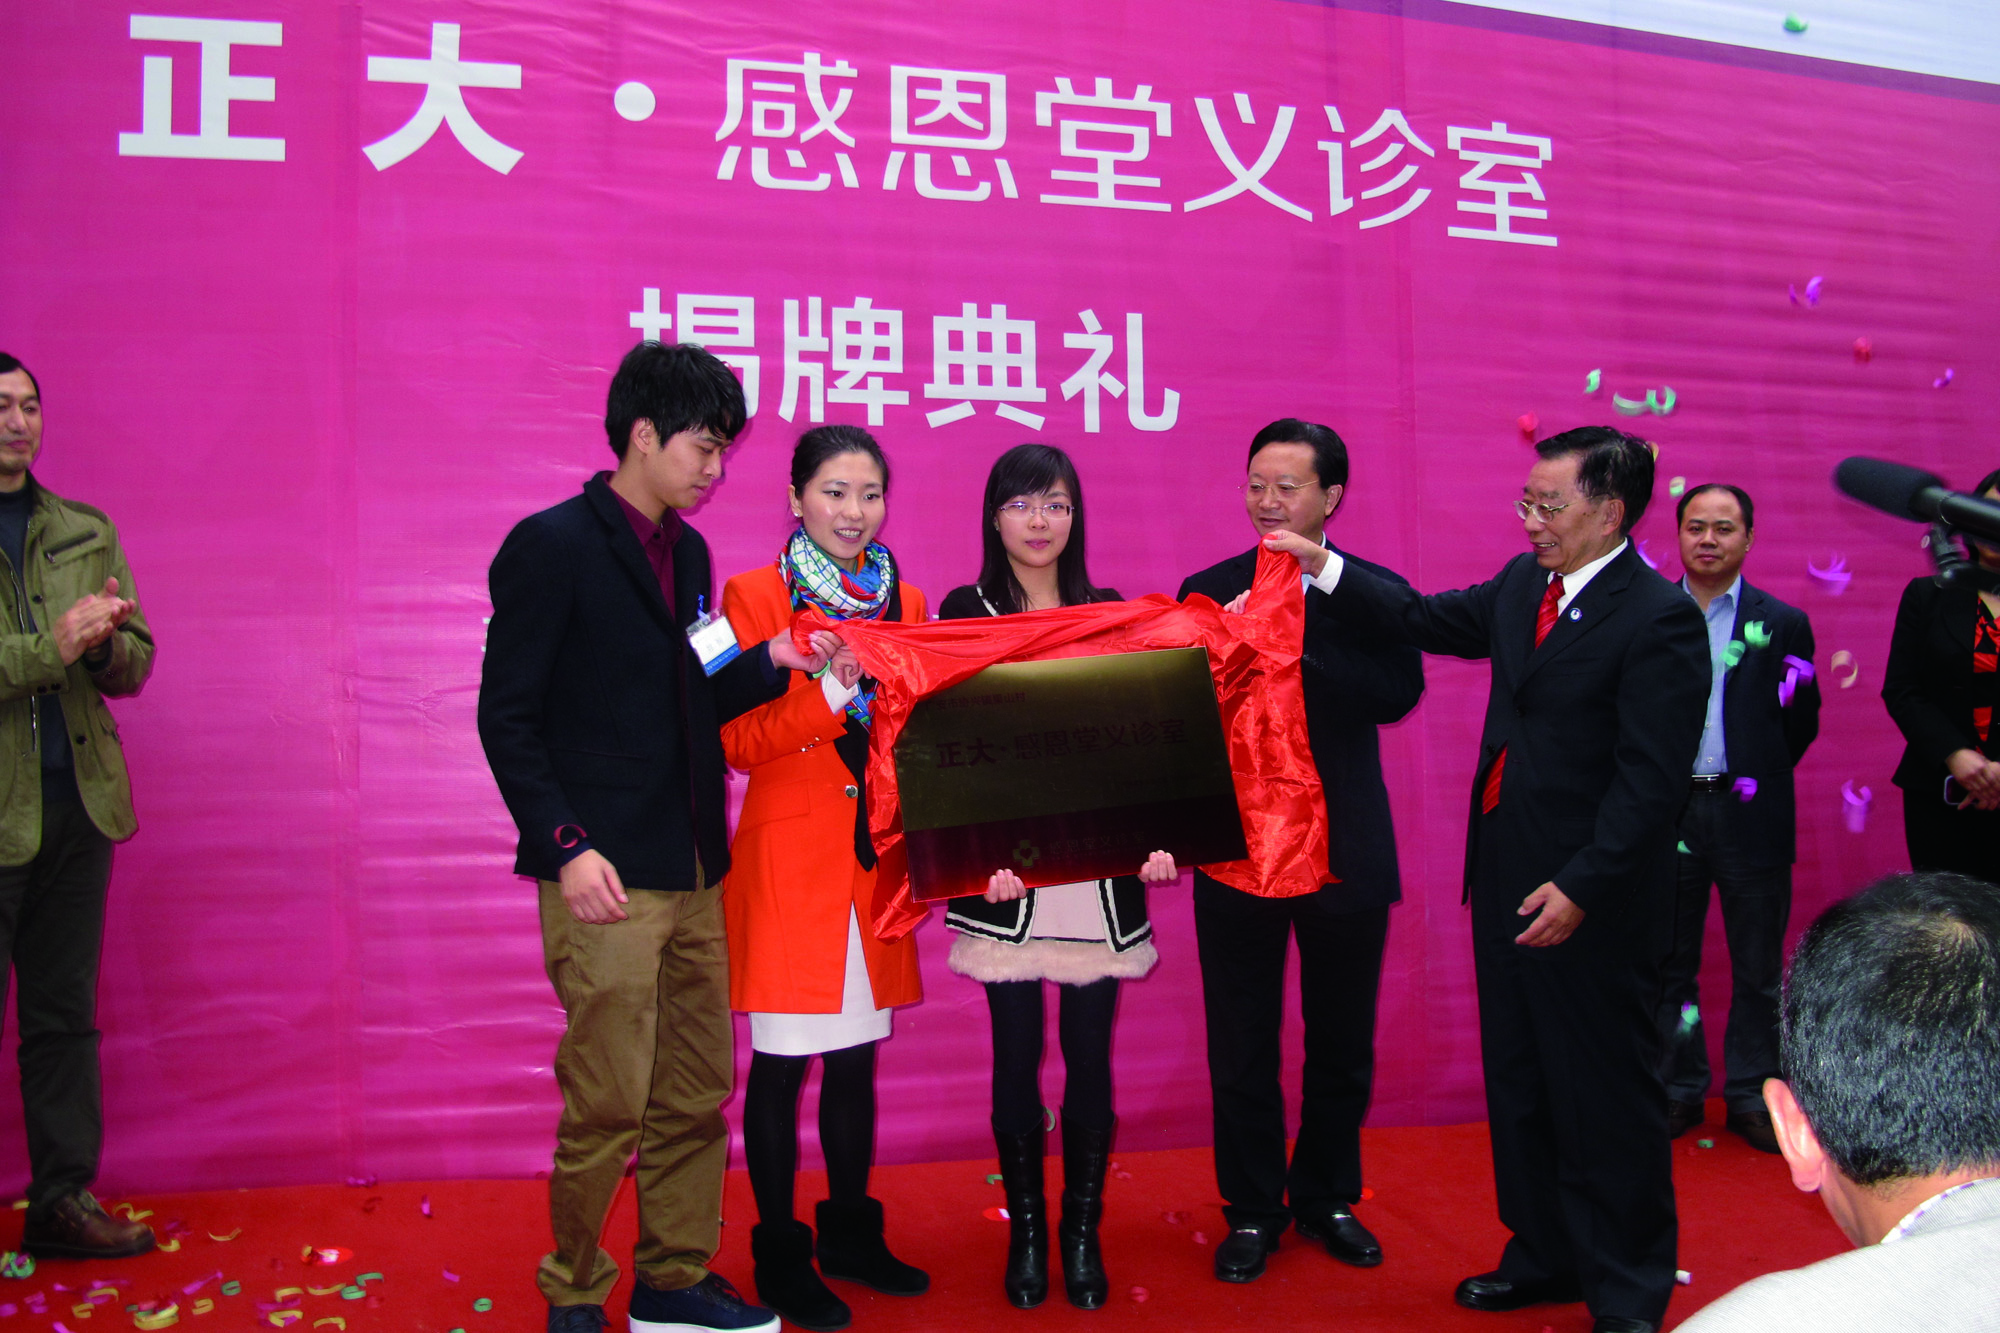 ToJoy donating free clinics to the town of Guangan, Sichuan Province